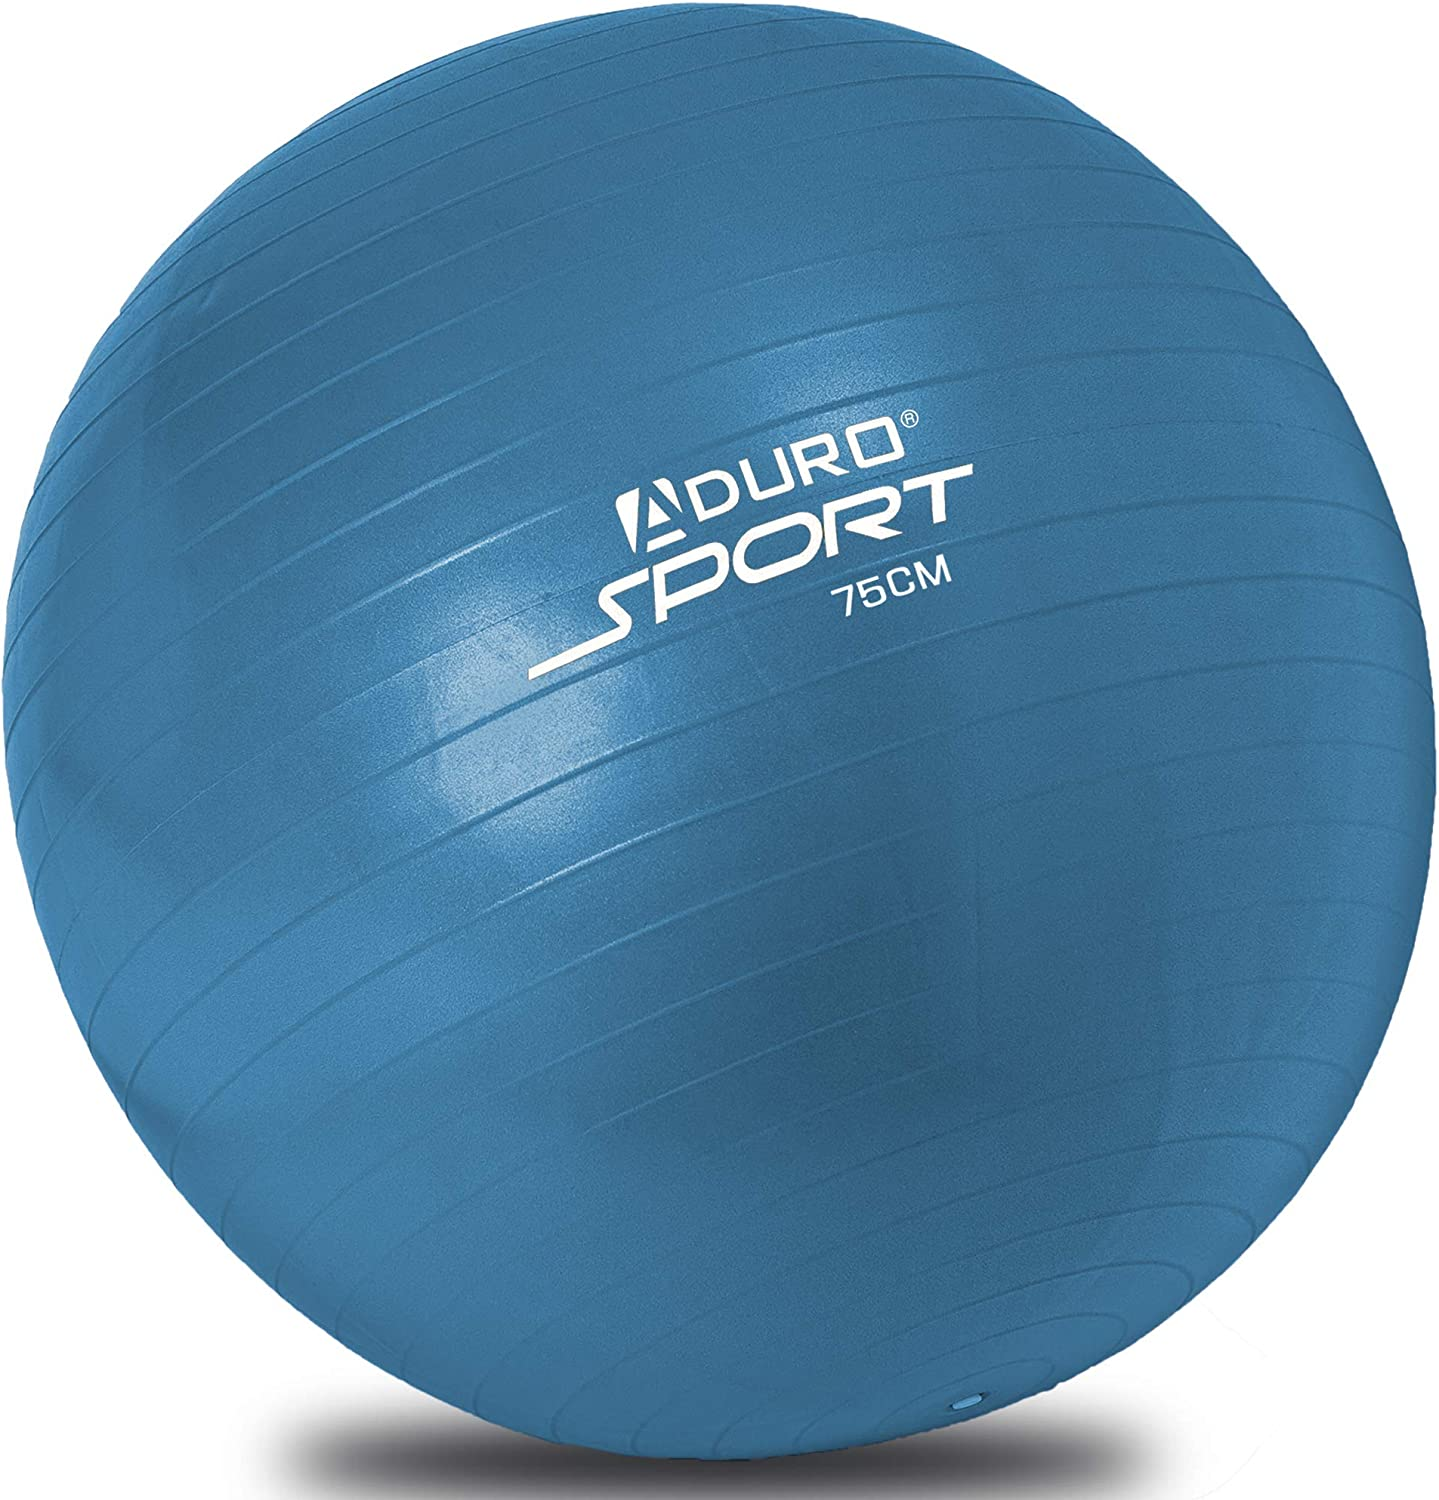 Aduro Sport Yoga Exercise Ball, 55 65 75cm Workout Fitness Ball Chair with Anti-Burst Non-Slip Surface